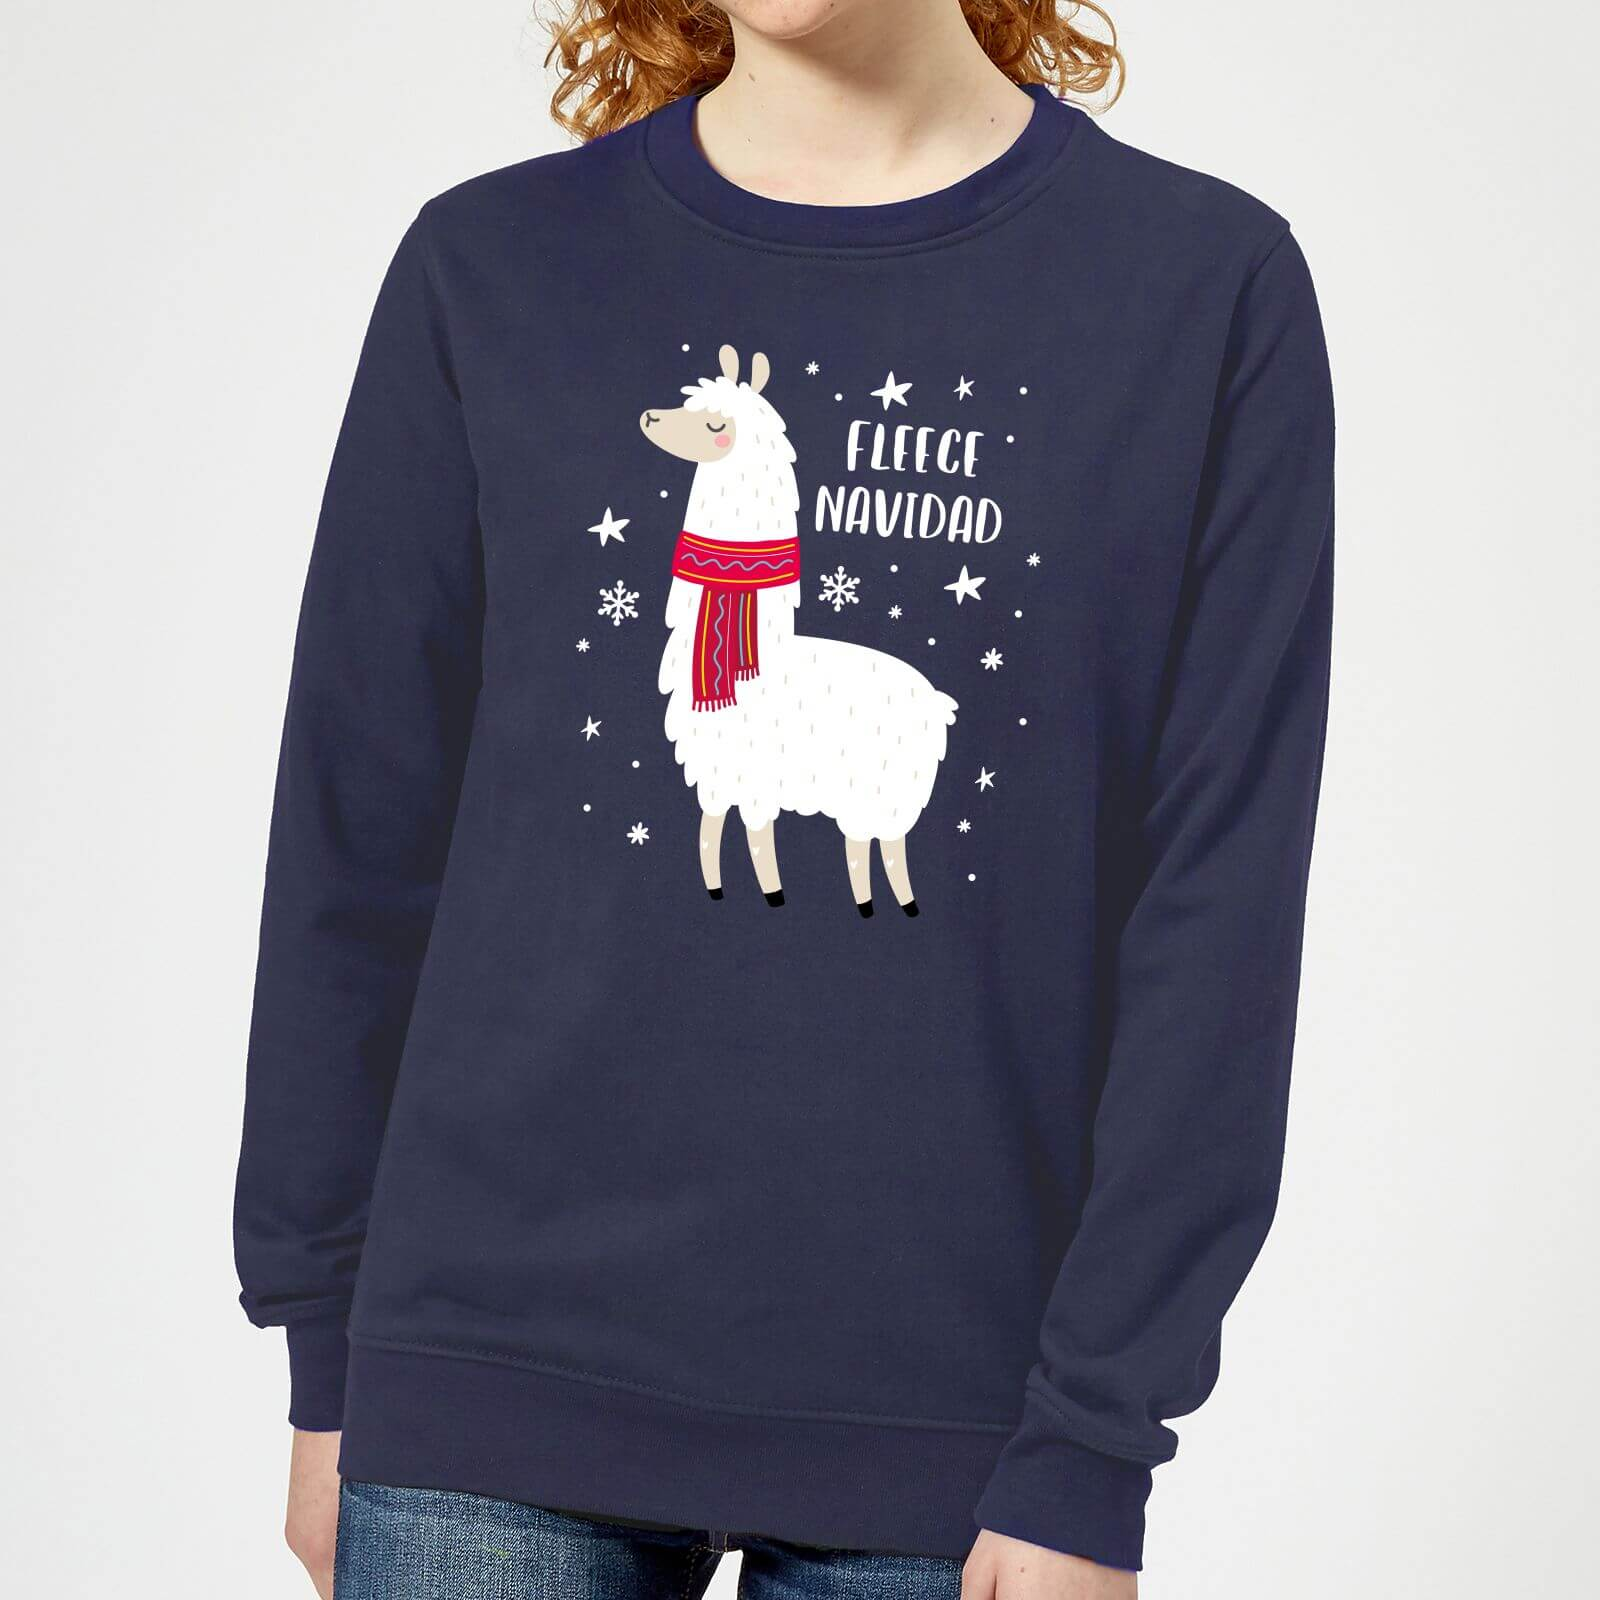 Get a FREE Christmas T-Shirt when you buy any Christmas Jumper @iwantoneofthose